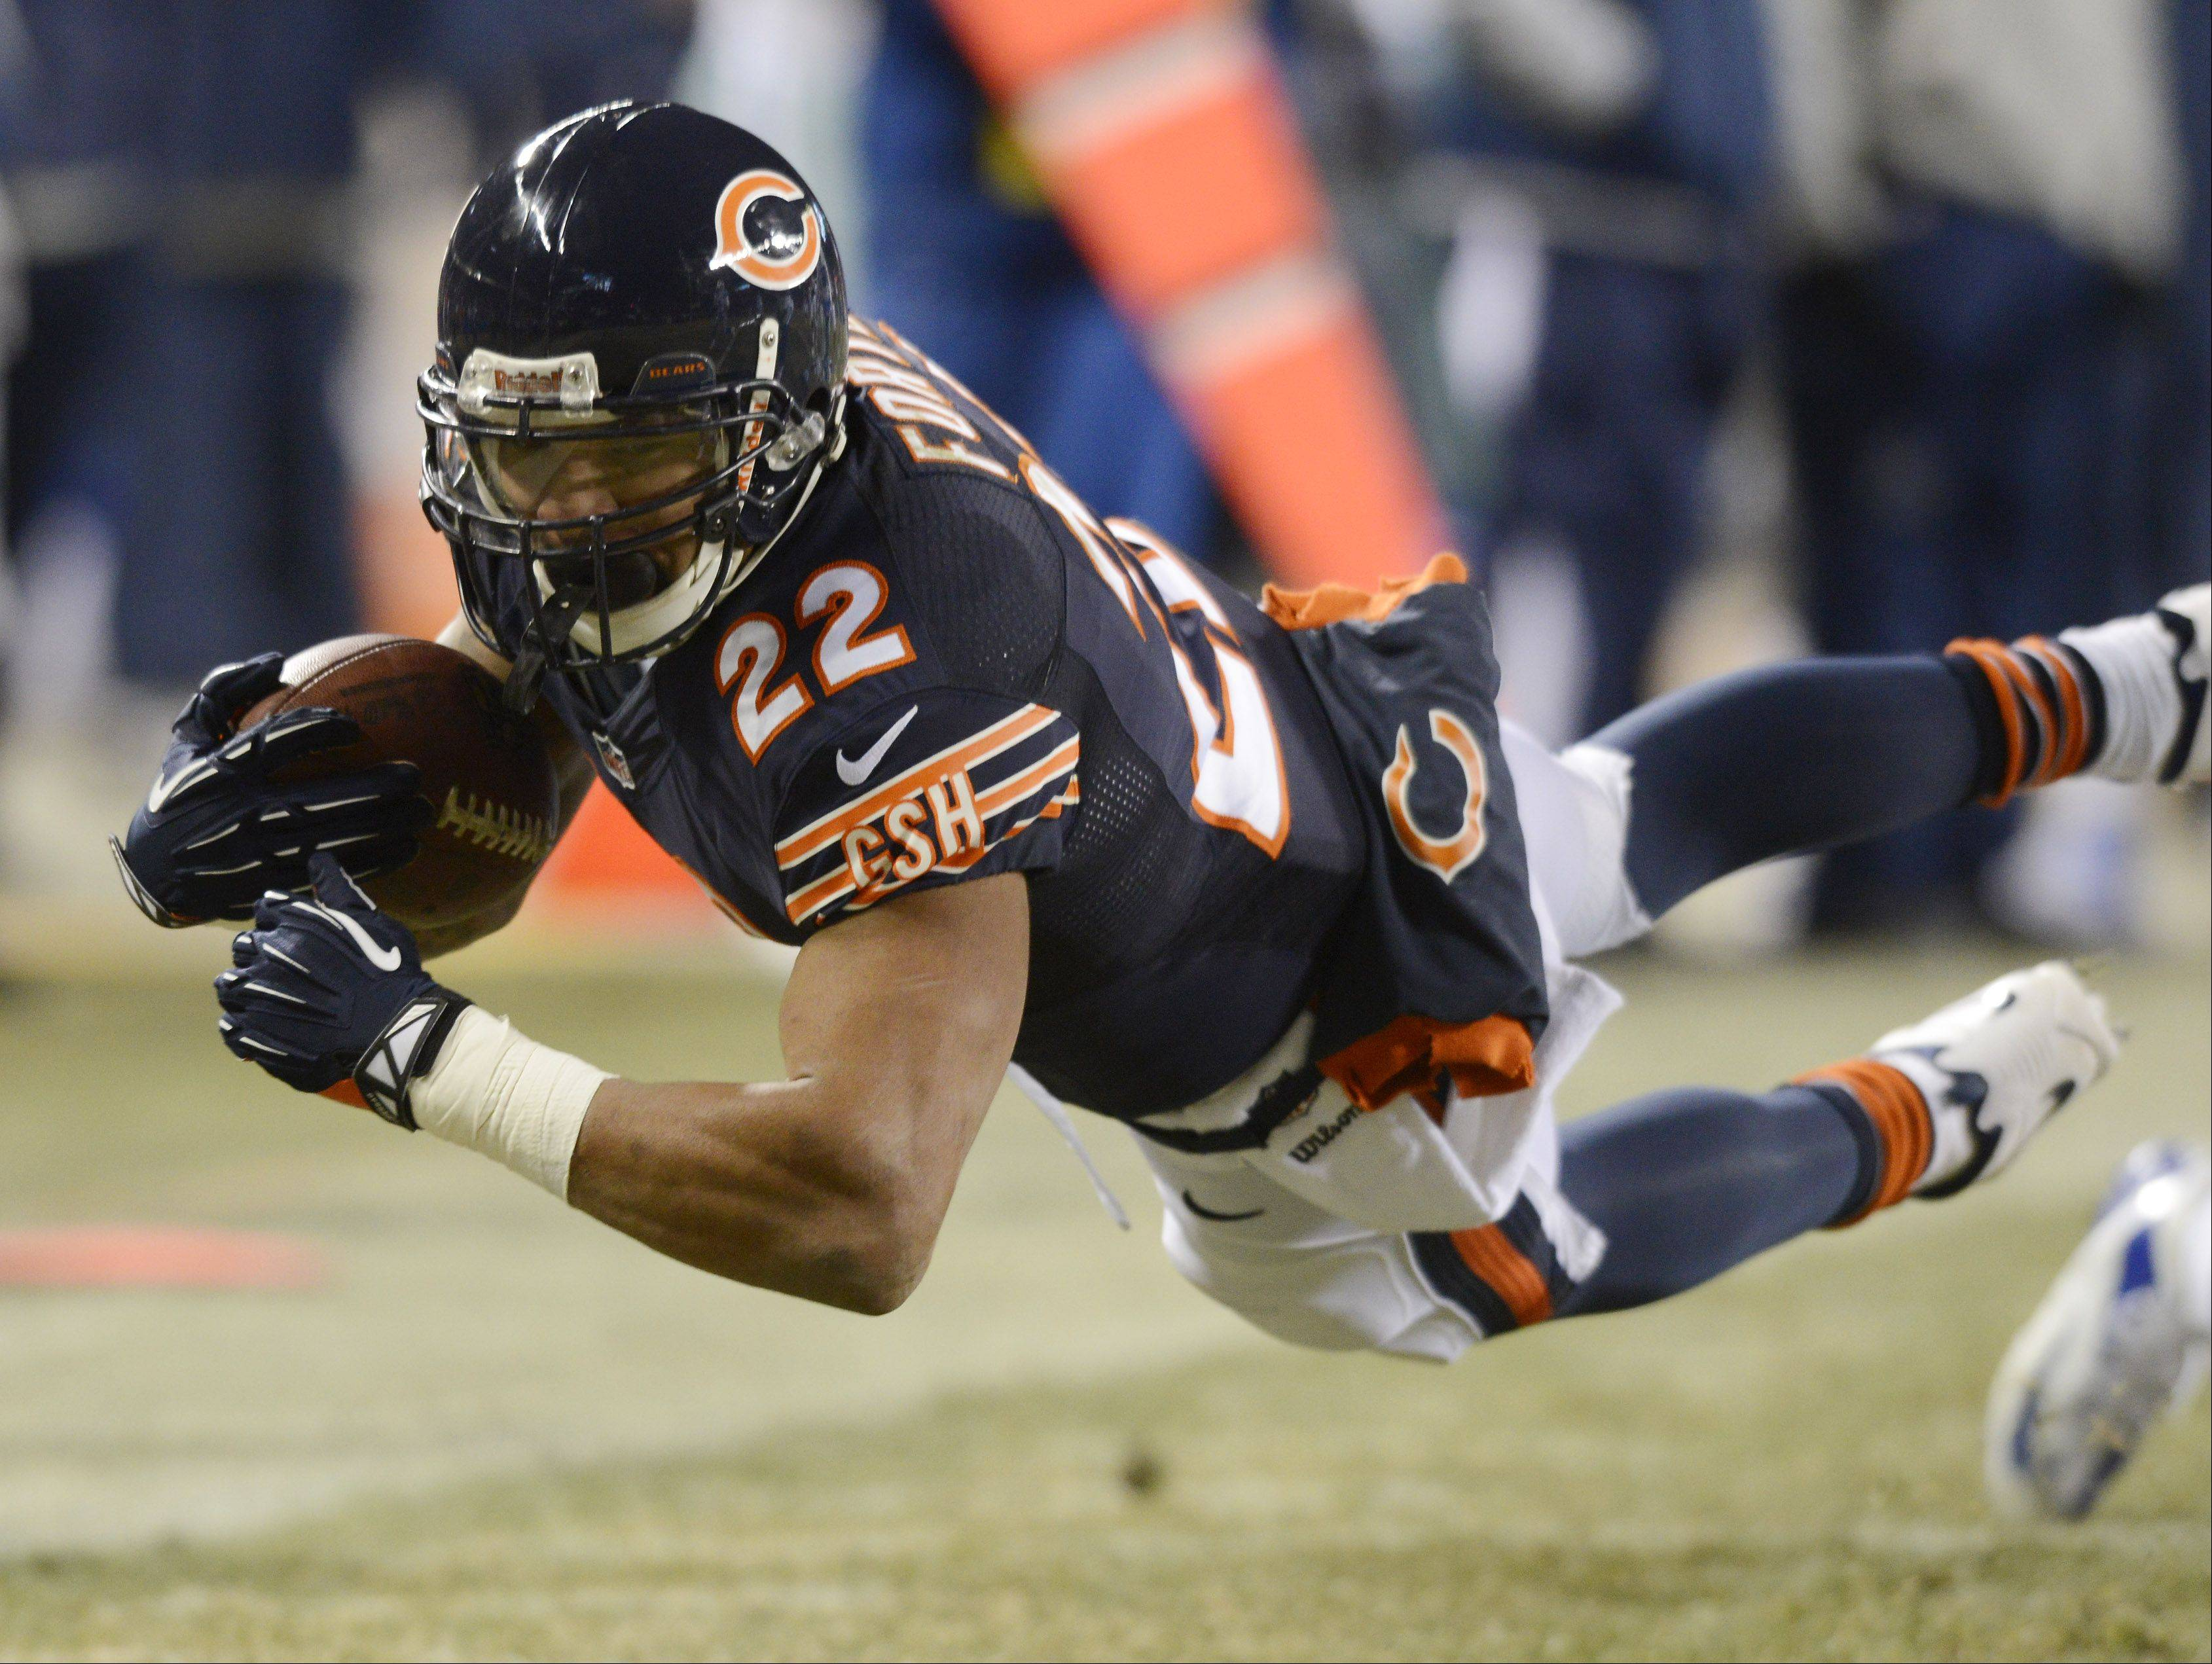 Chicago Bears running back Matt Forte dives for extra yardage against the Cowboys.